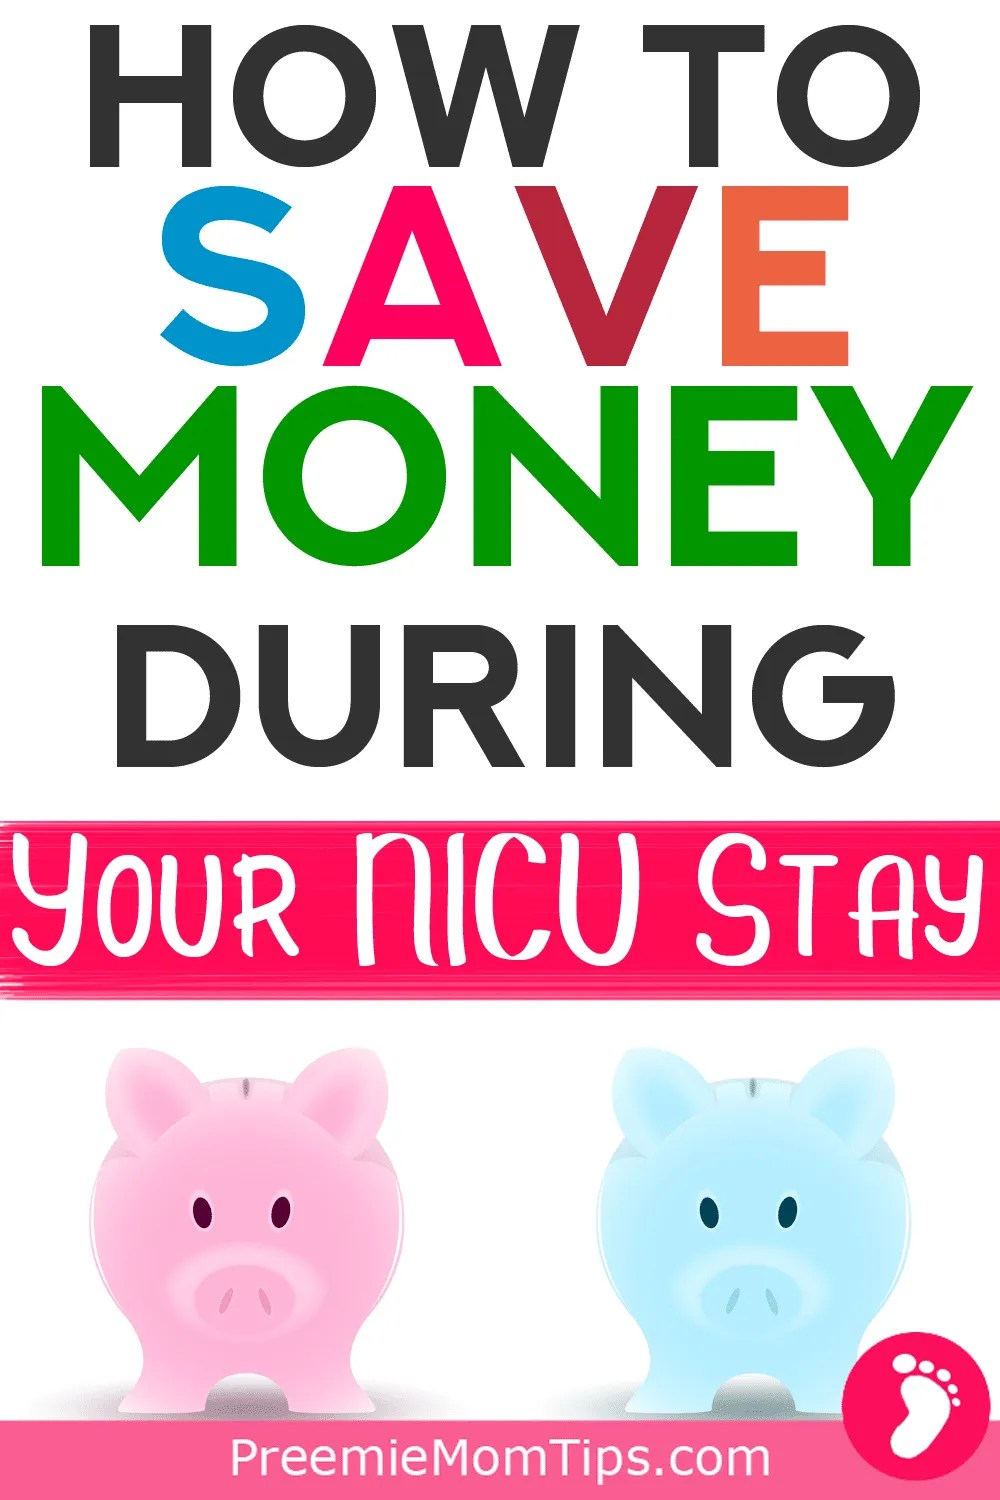 When you're a new mom to a NICU baby, you need all kinds of NICU tips to help you cope. Here are the top money saving tips we discovered during our NICU stay with our premature baby. #baby #nicu #nicubaby #nicumom